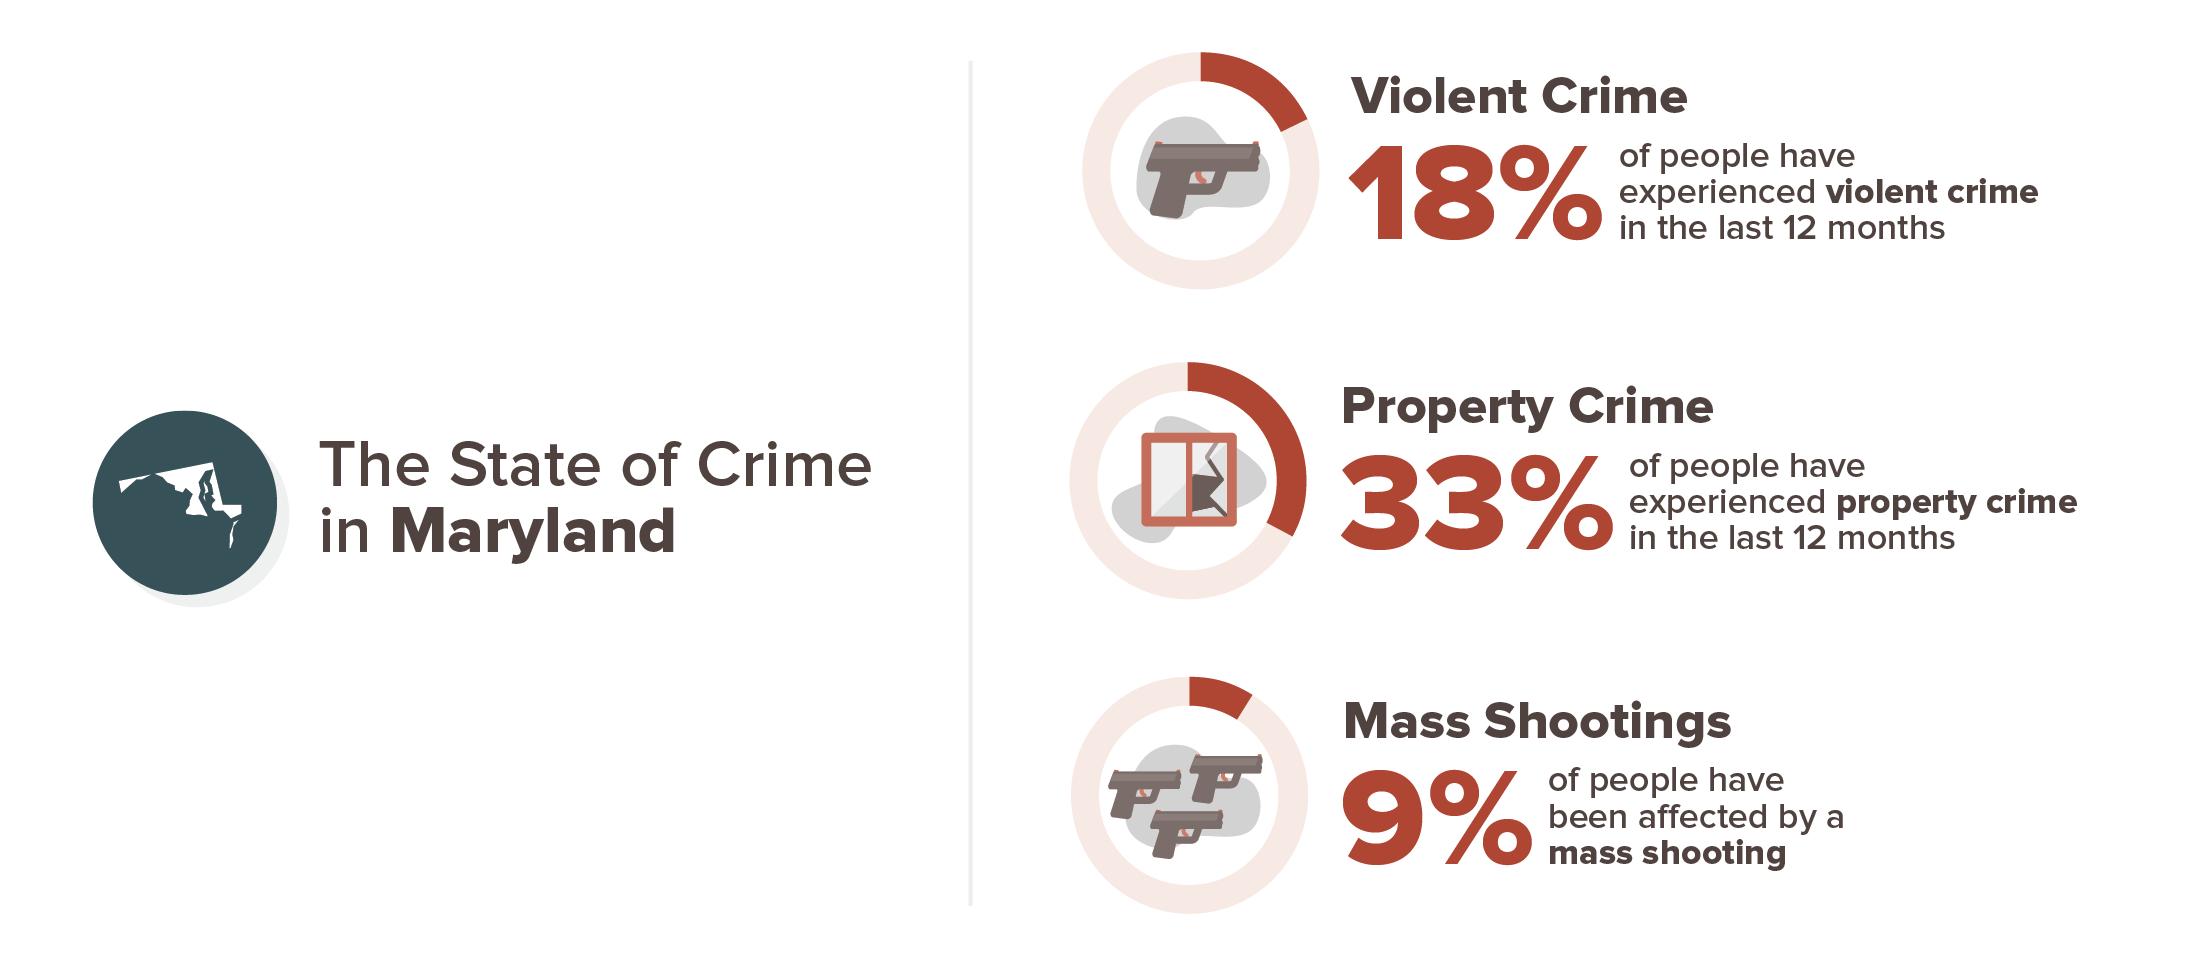 Maryland crime experience infographic; 18% violent crime, 33% property crime, 9% mass shooting